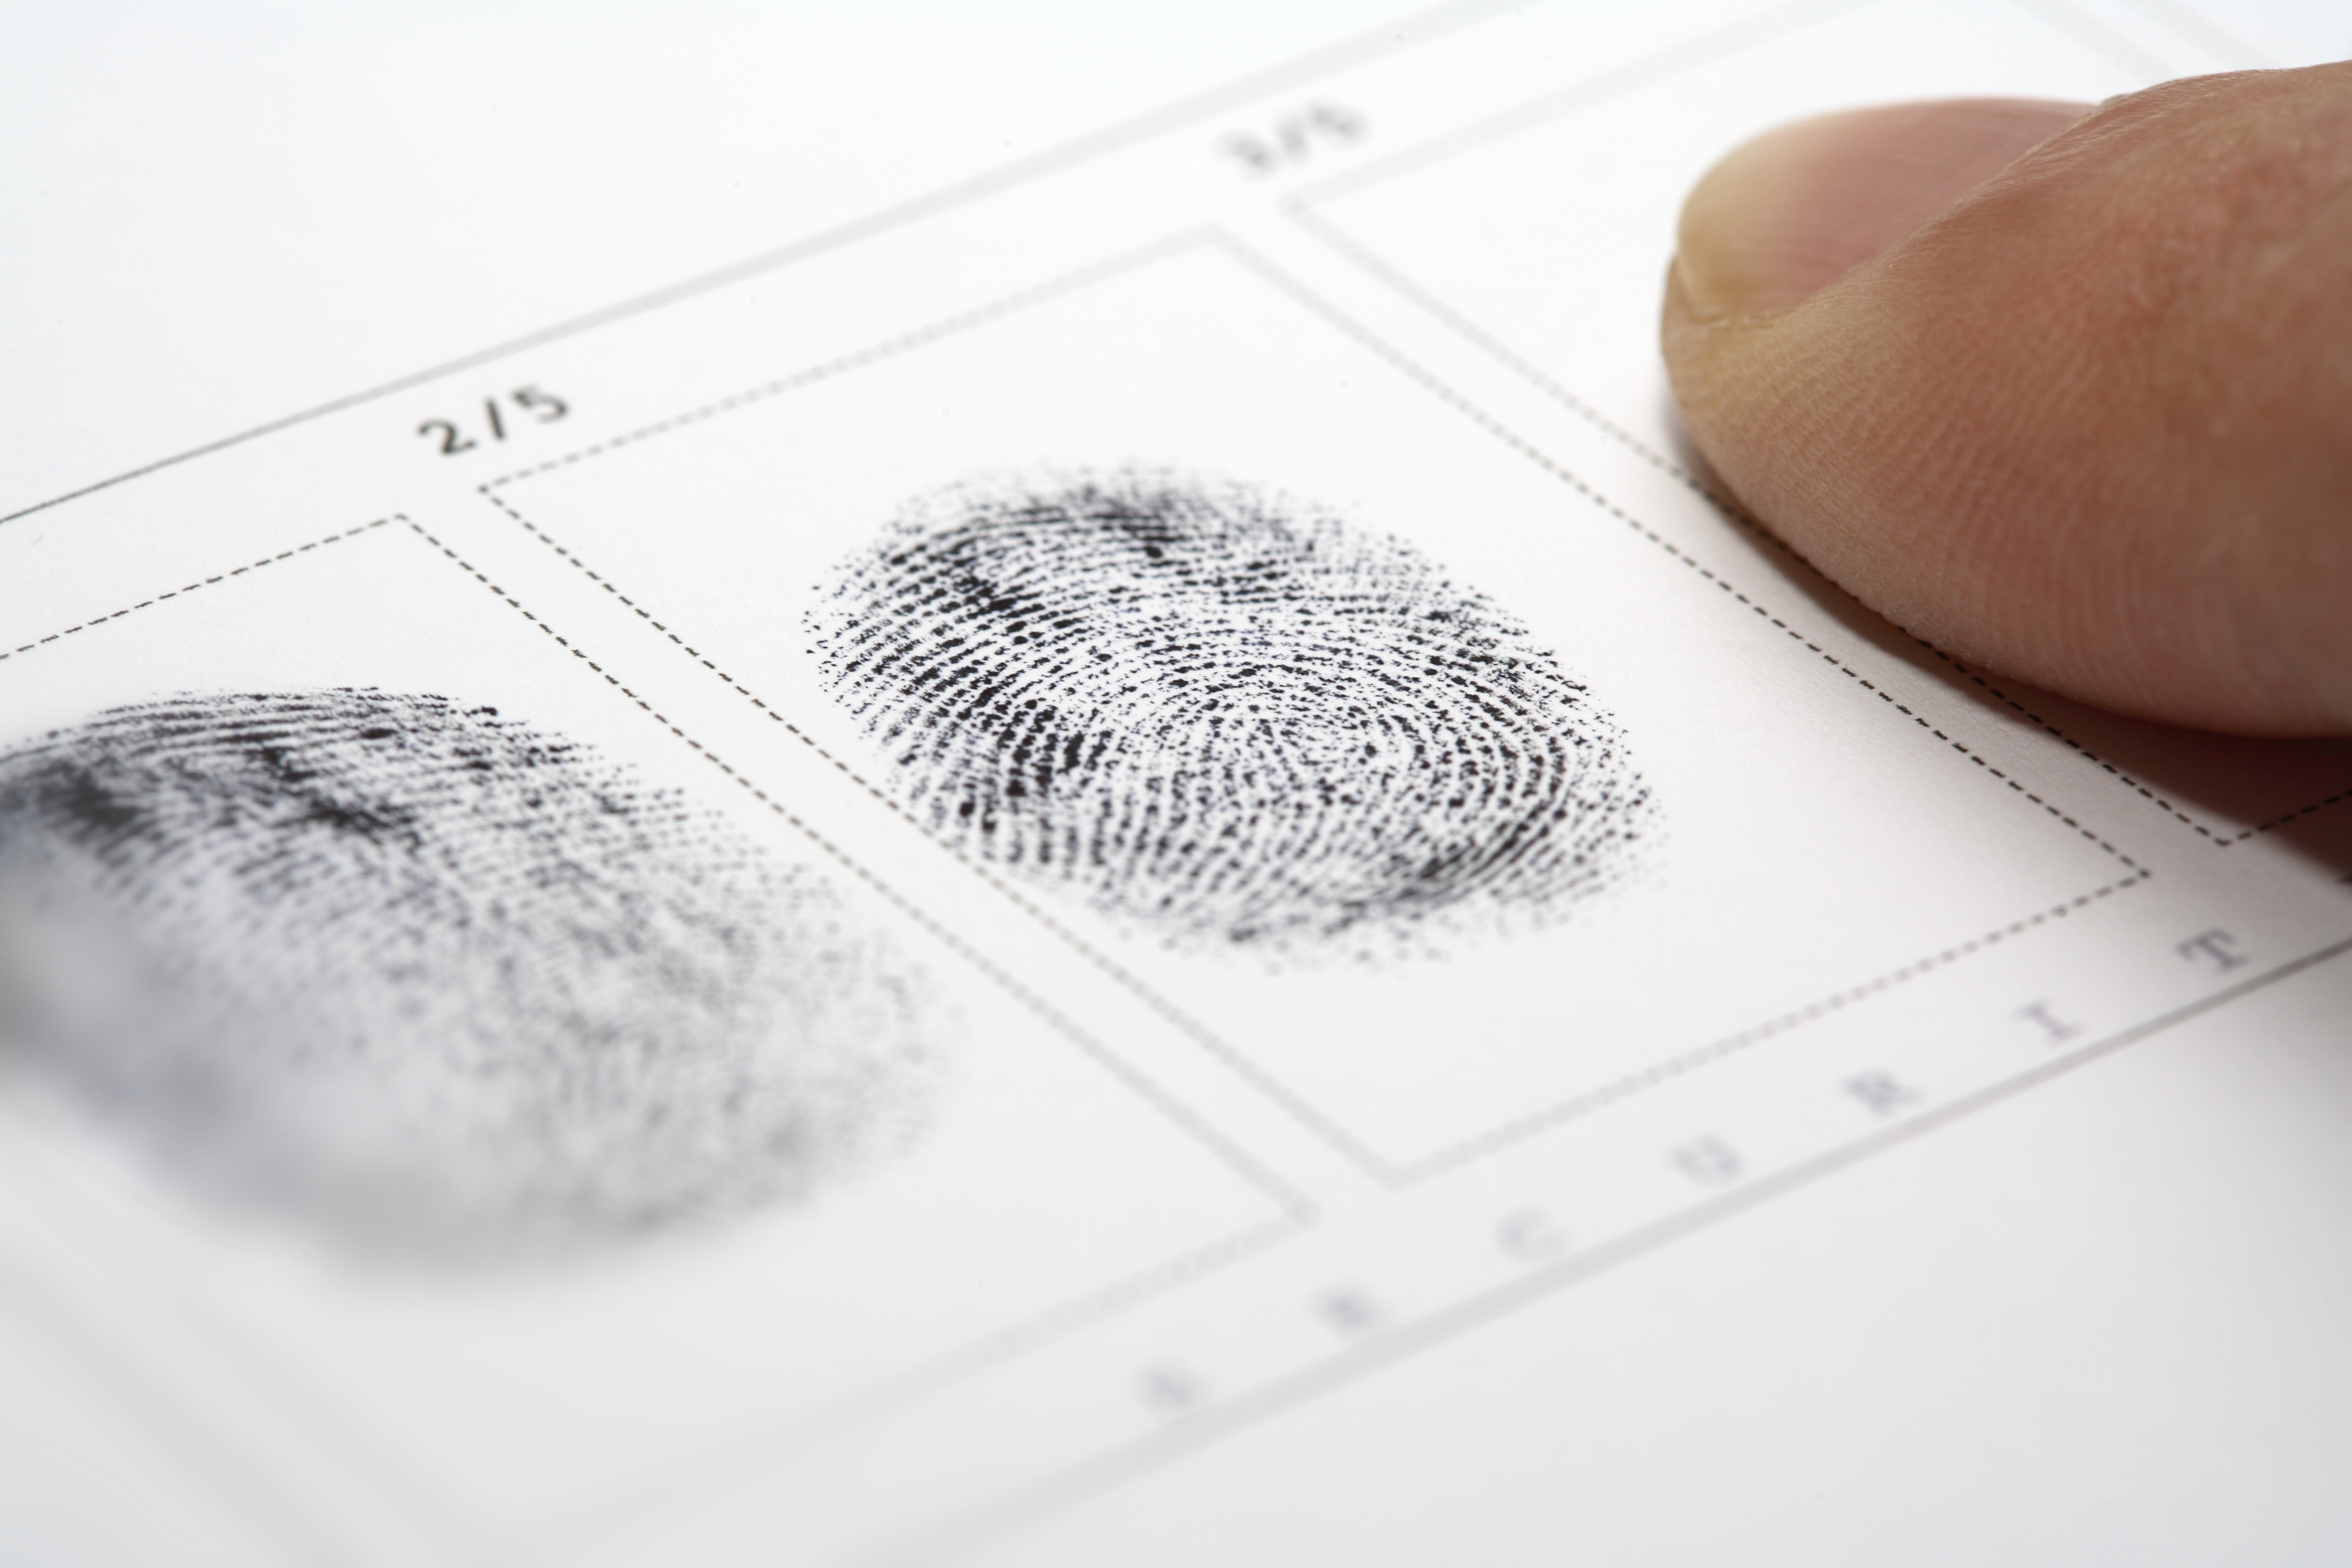 How to Get a Copy of Your Criminal Record in Illinois